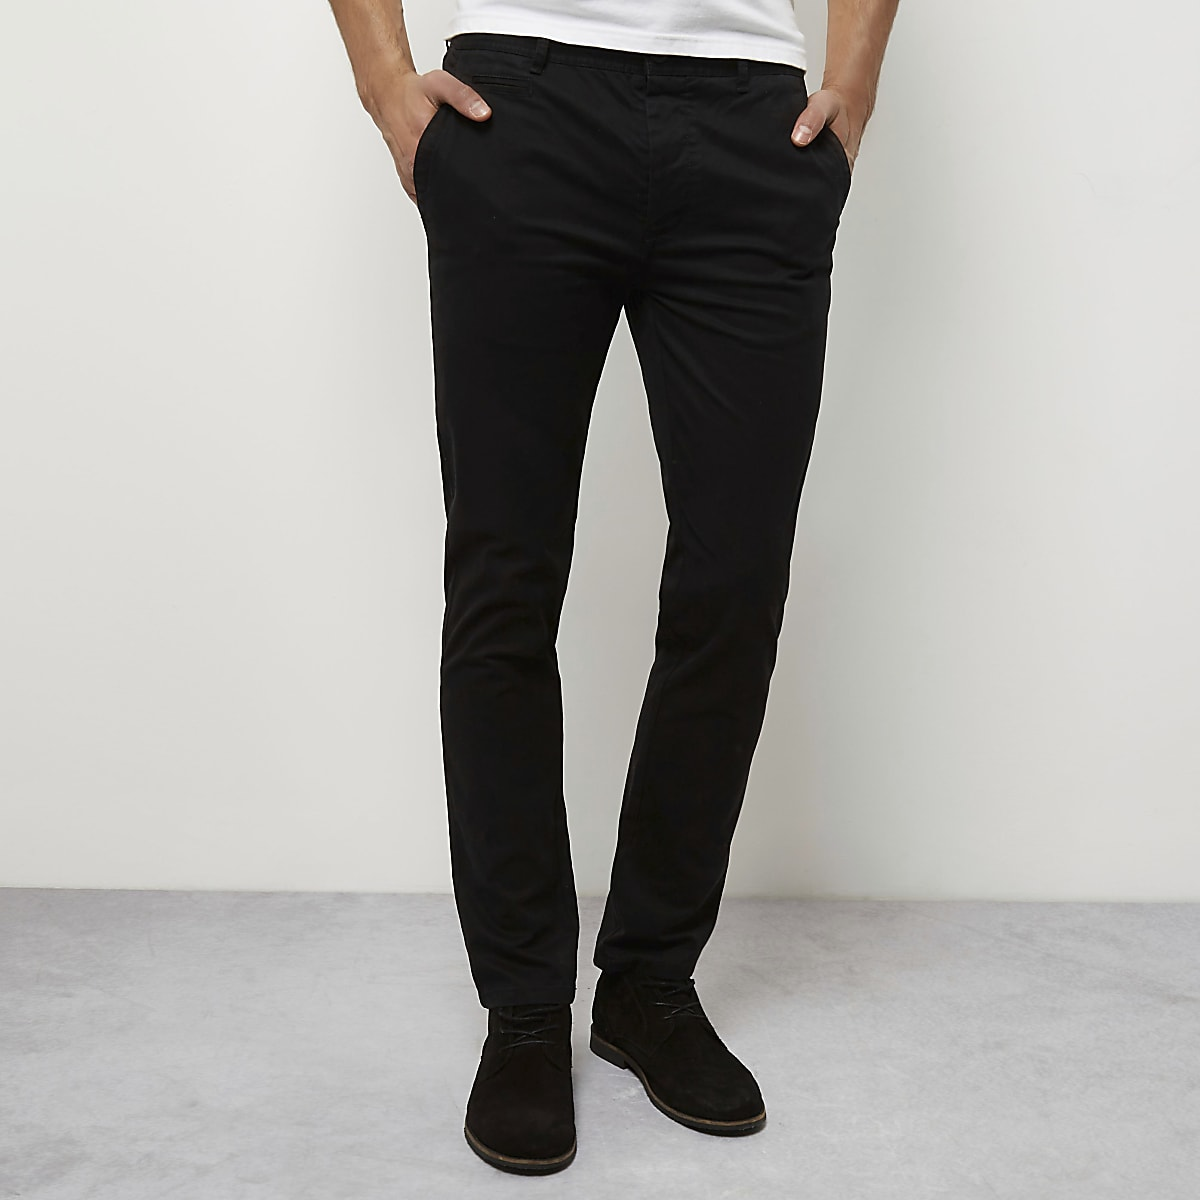 Black stretch skinny chino trousers